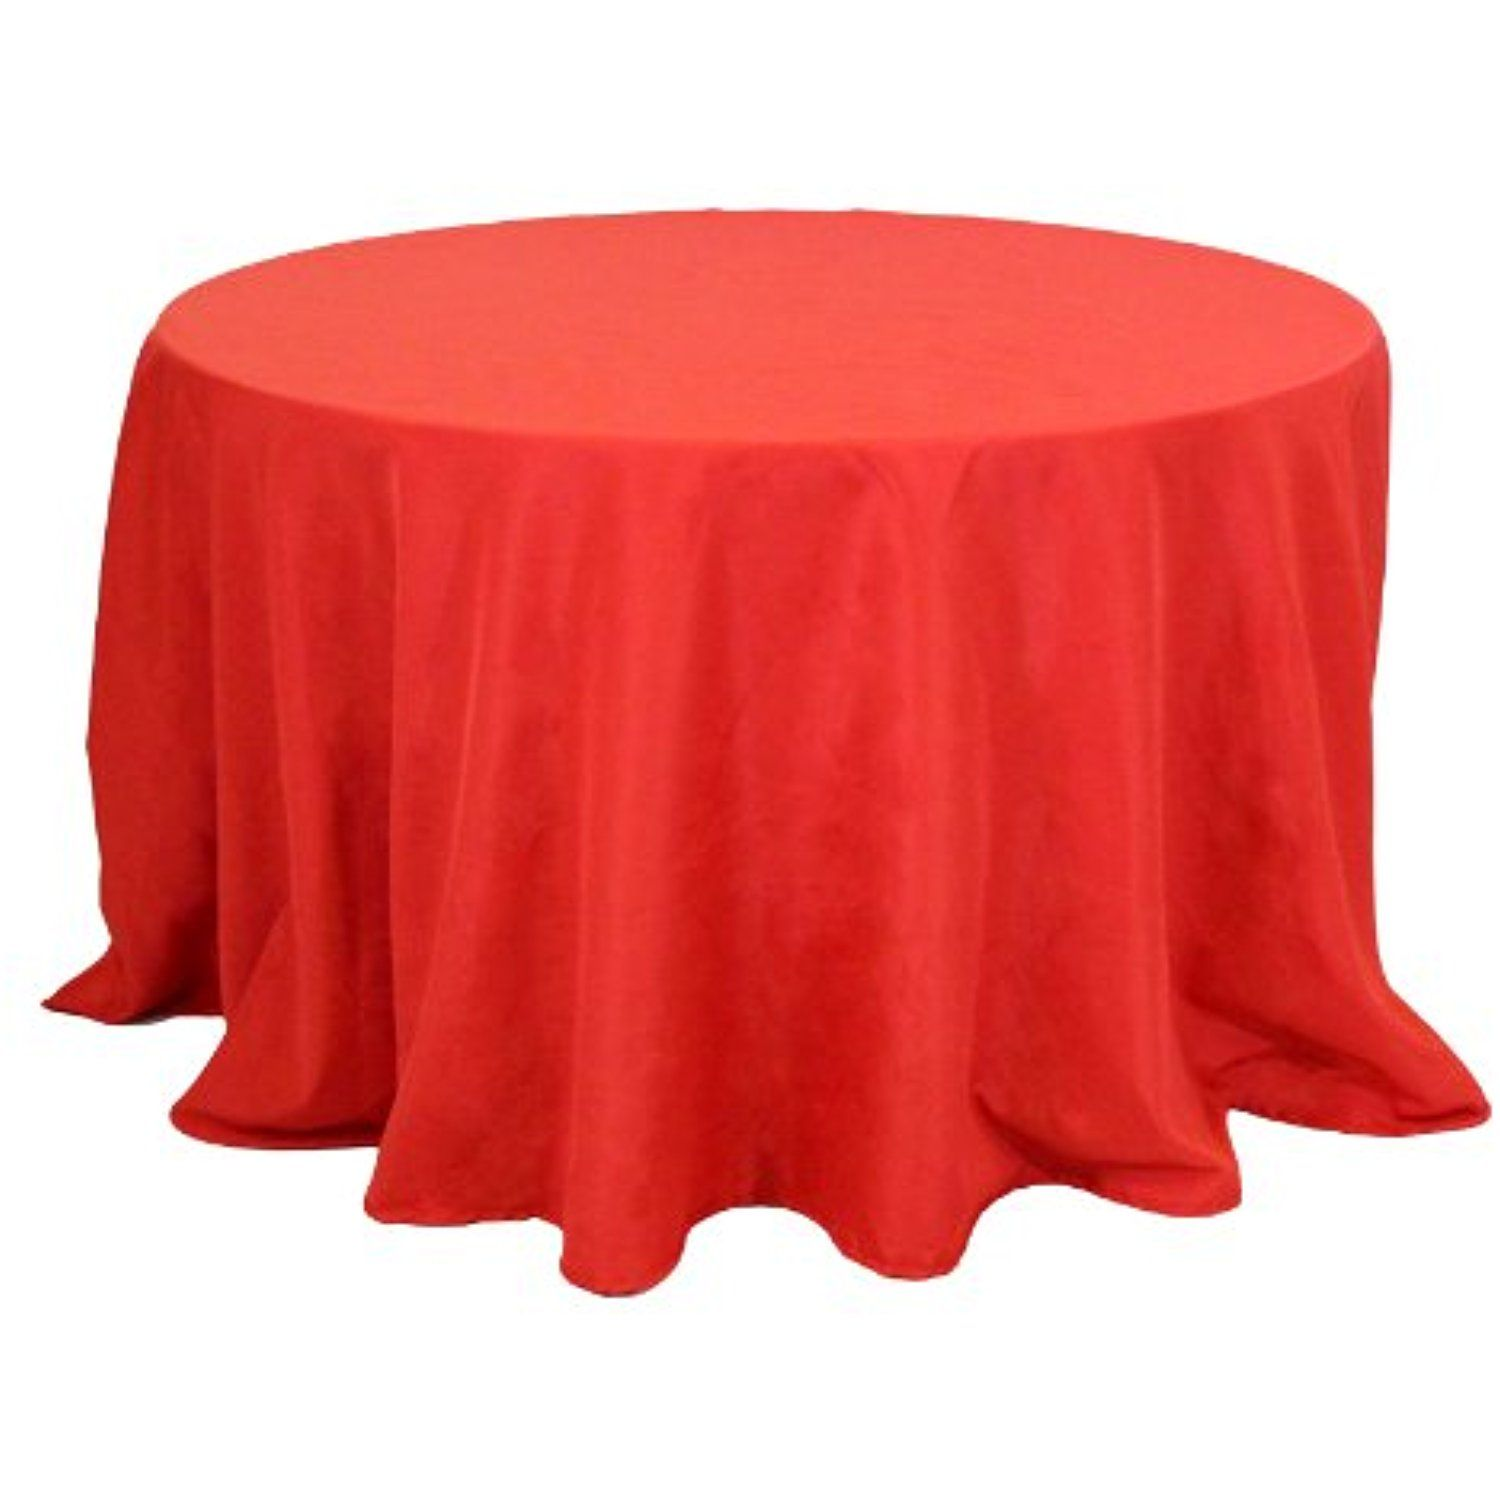 Koyal Wholesale Round Polyester Tablecloth 120 Inch Red Want To Know More Click On The Image This Is An Wedding Table Linens Table Cloth Table Linens